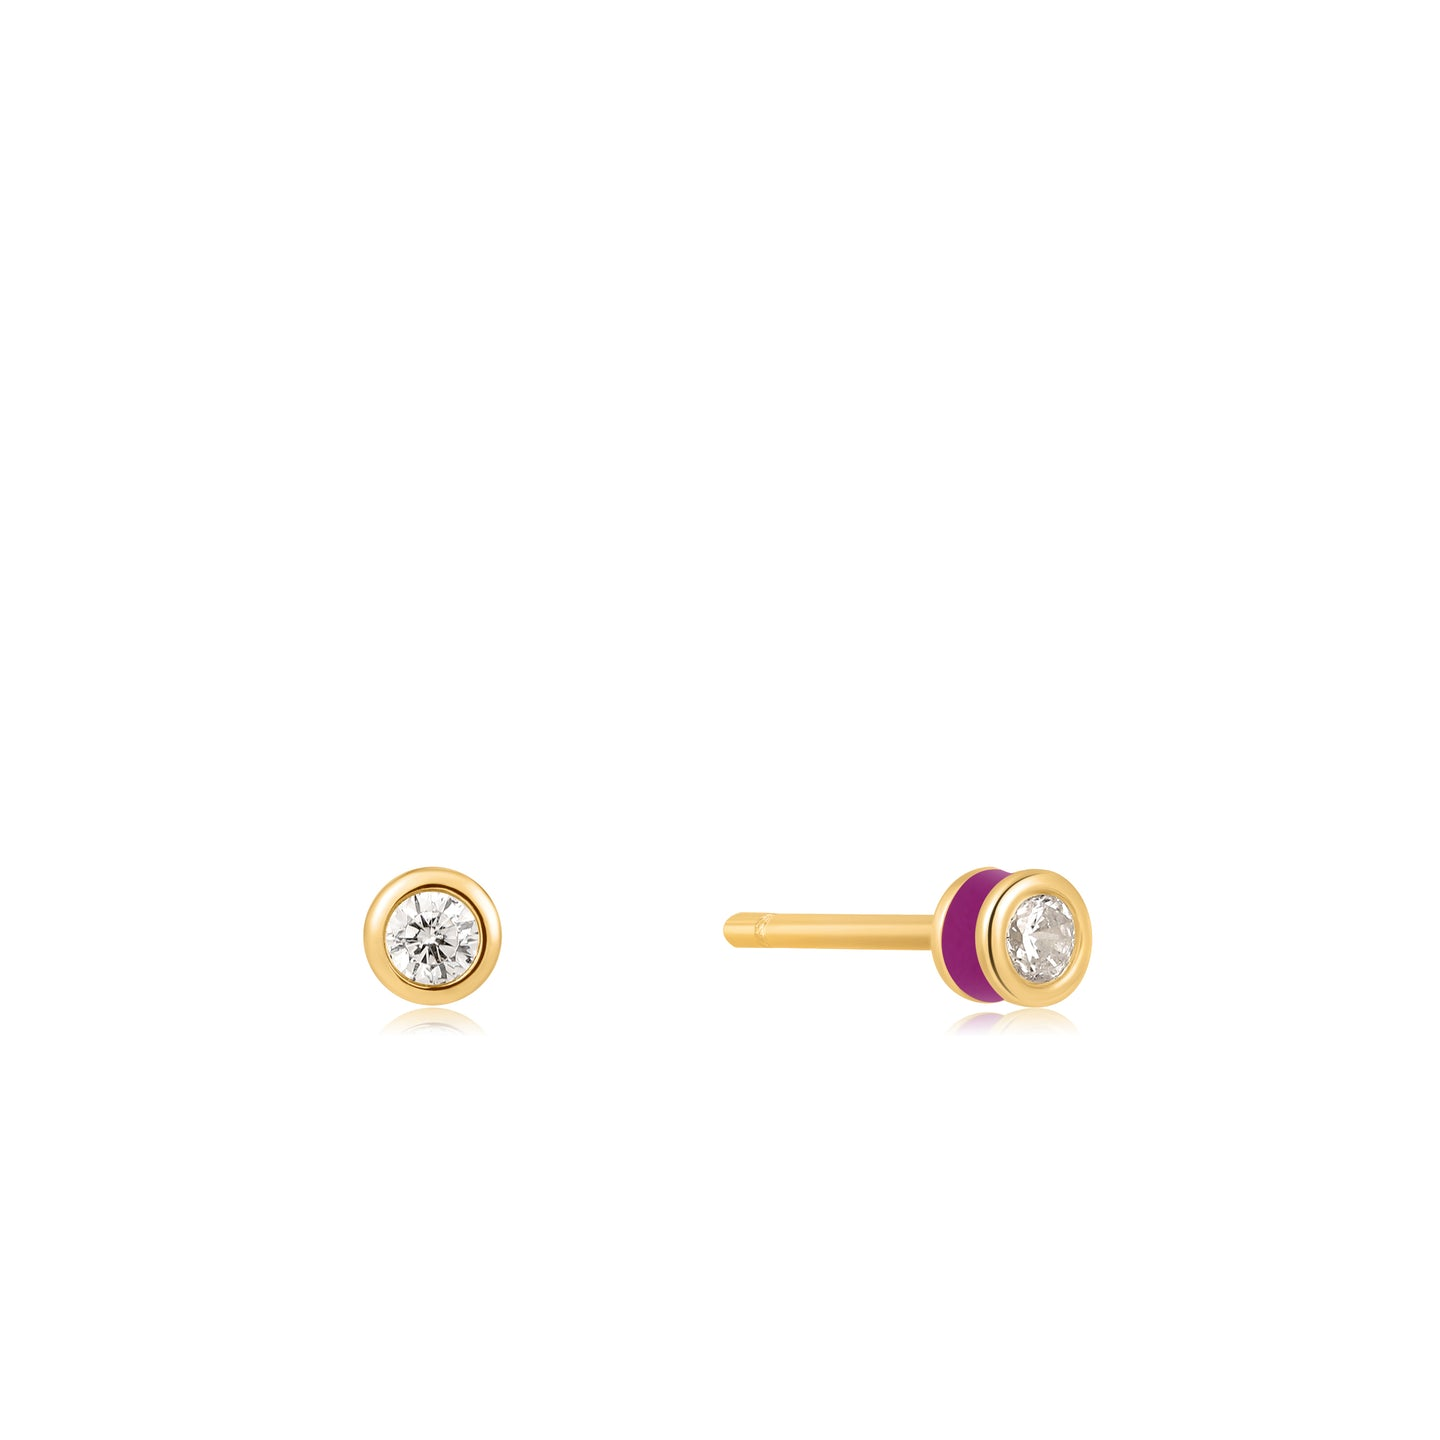 Berry Enamel Gold Stud Earrings E028-01G-R